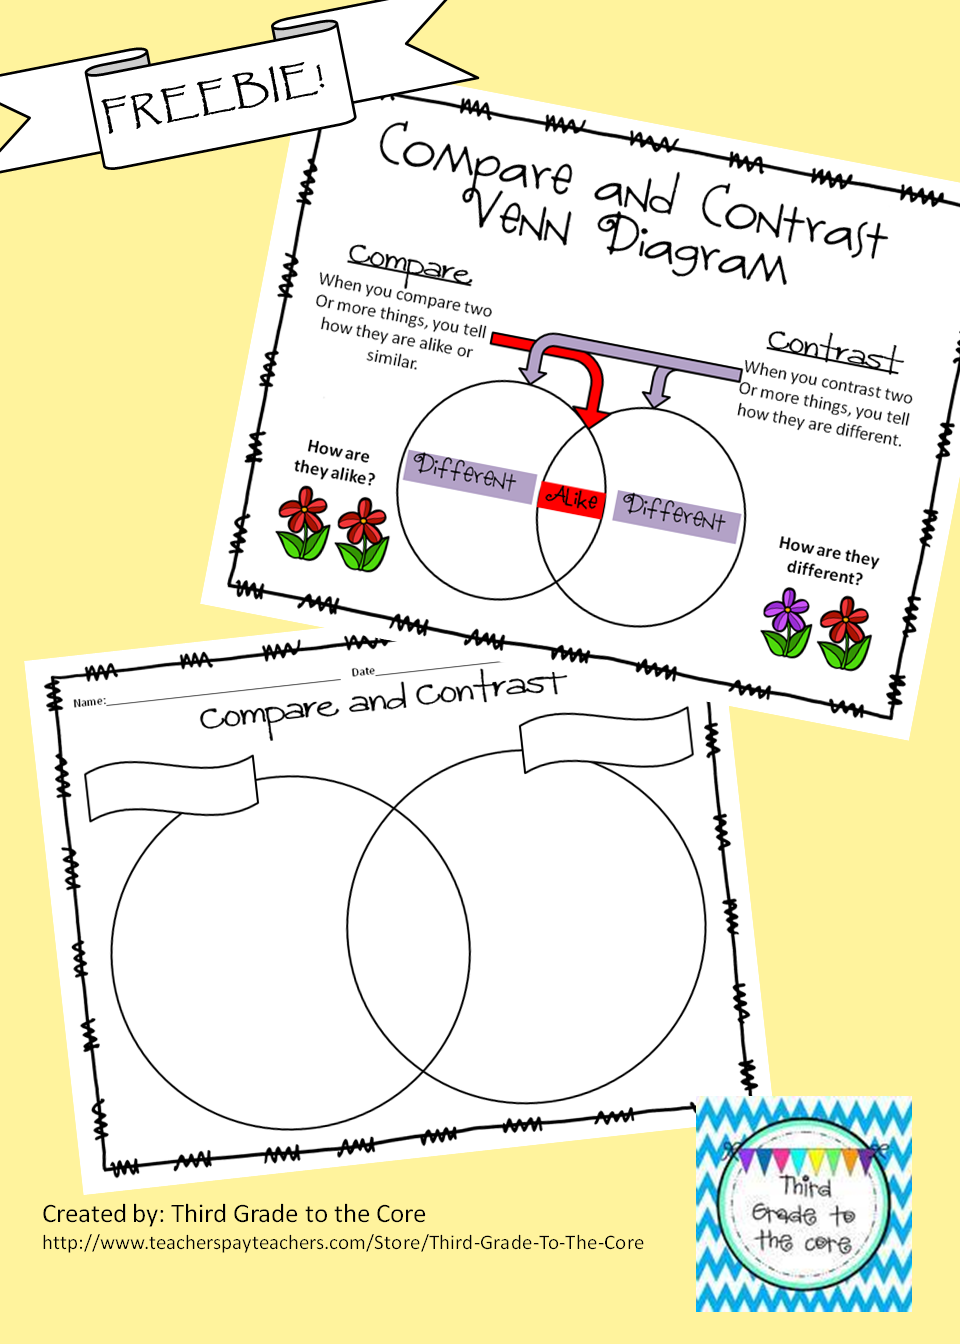 small resolution of Freebie! Compare and Contrast Venn Diagram with Classroom Poster!   Compare  and contrast